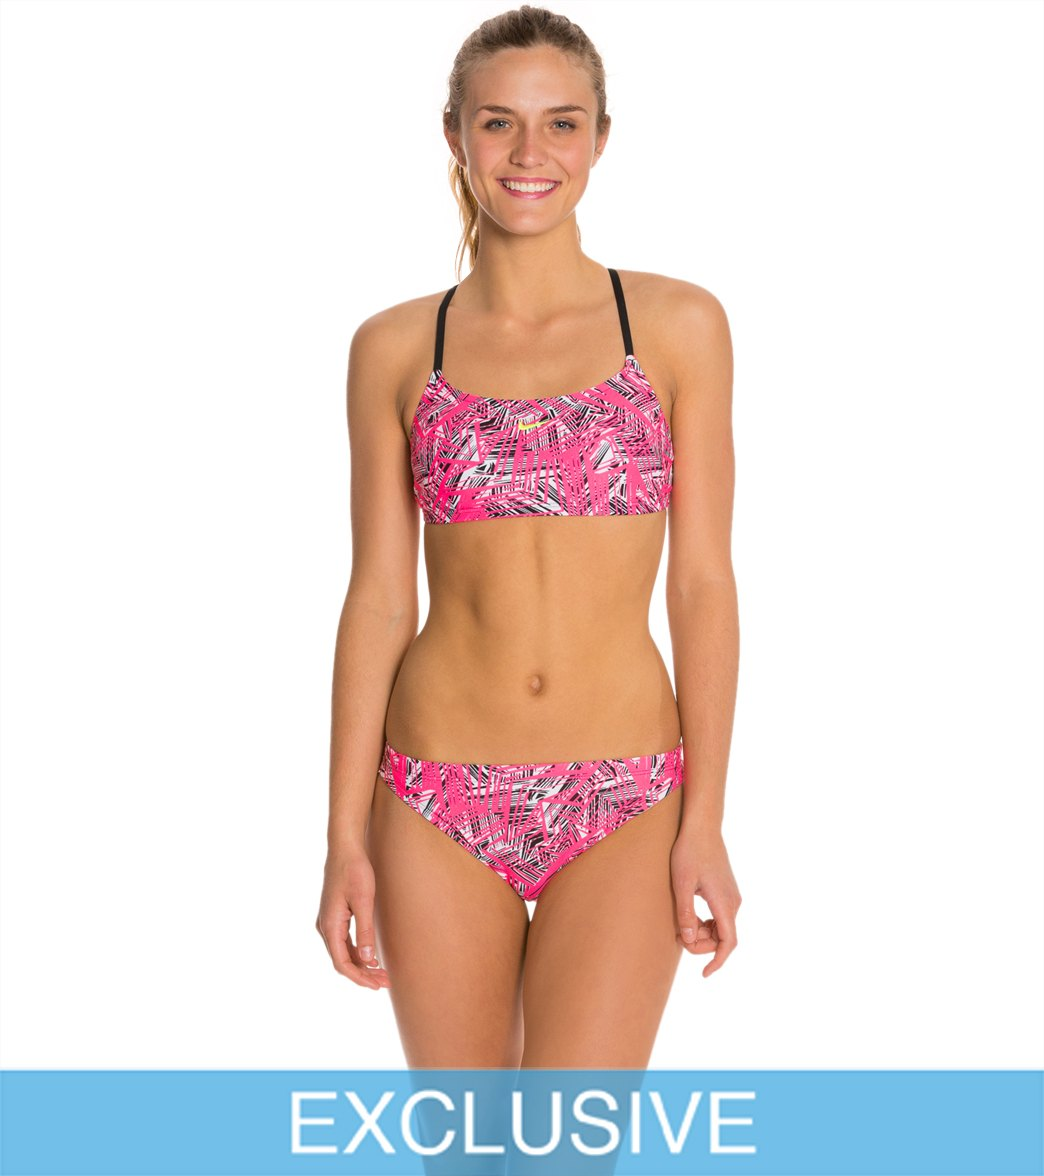 af019432988 SwimOutlet Exclusive Nike Scatterbrain 2 Piece Swimsuit Set at ...